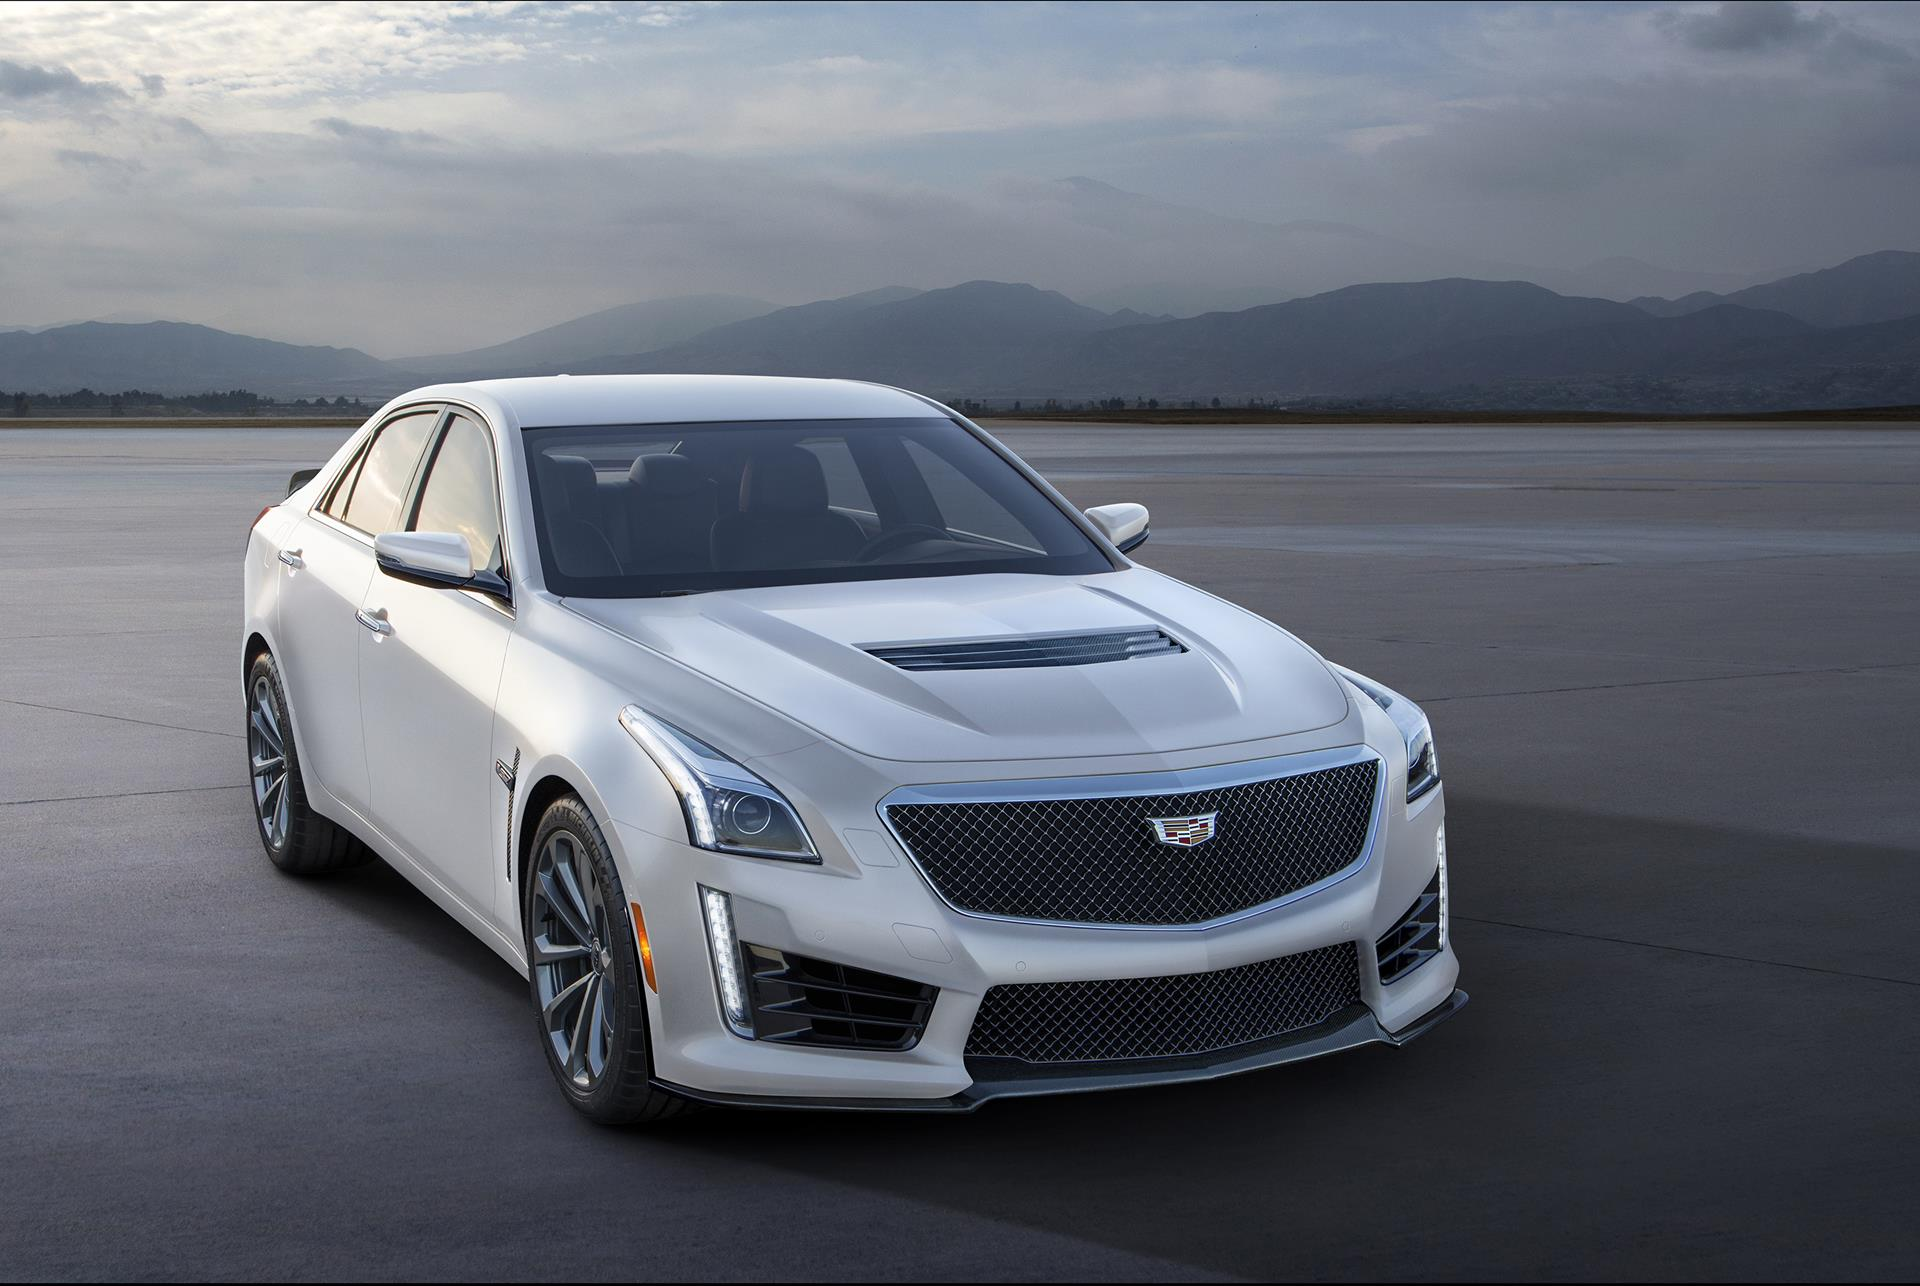 2016 Cadillac CTS-V White Frost Edition